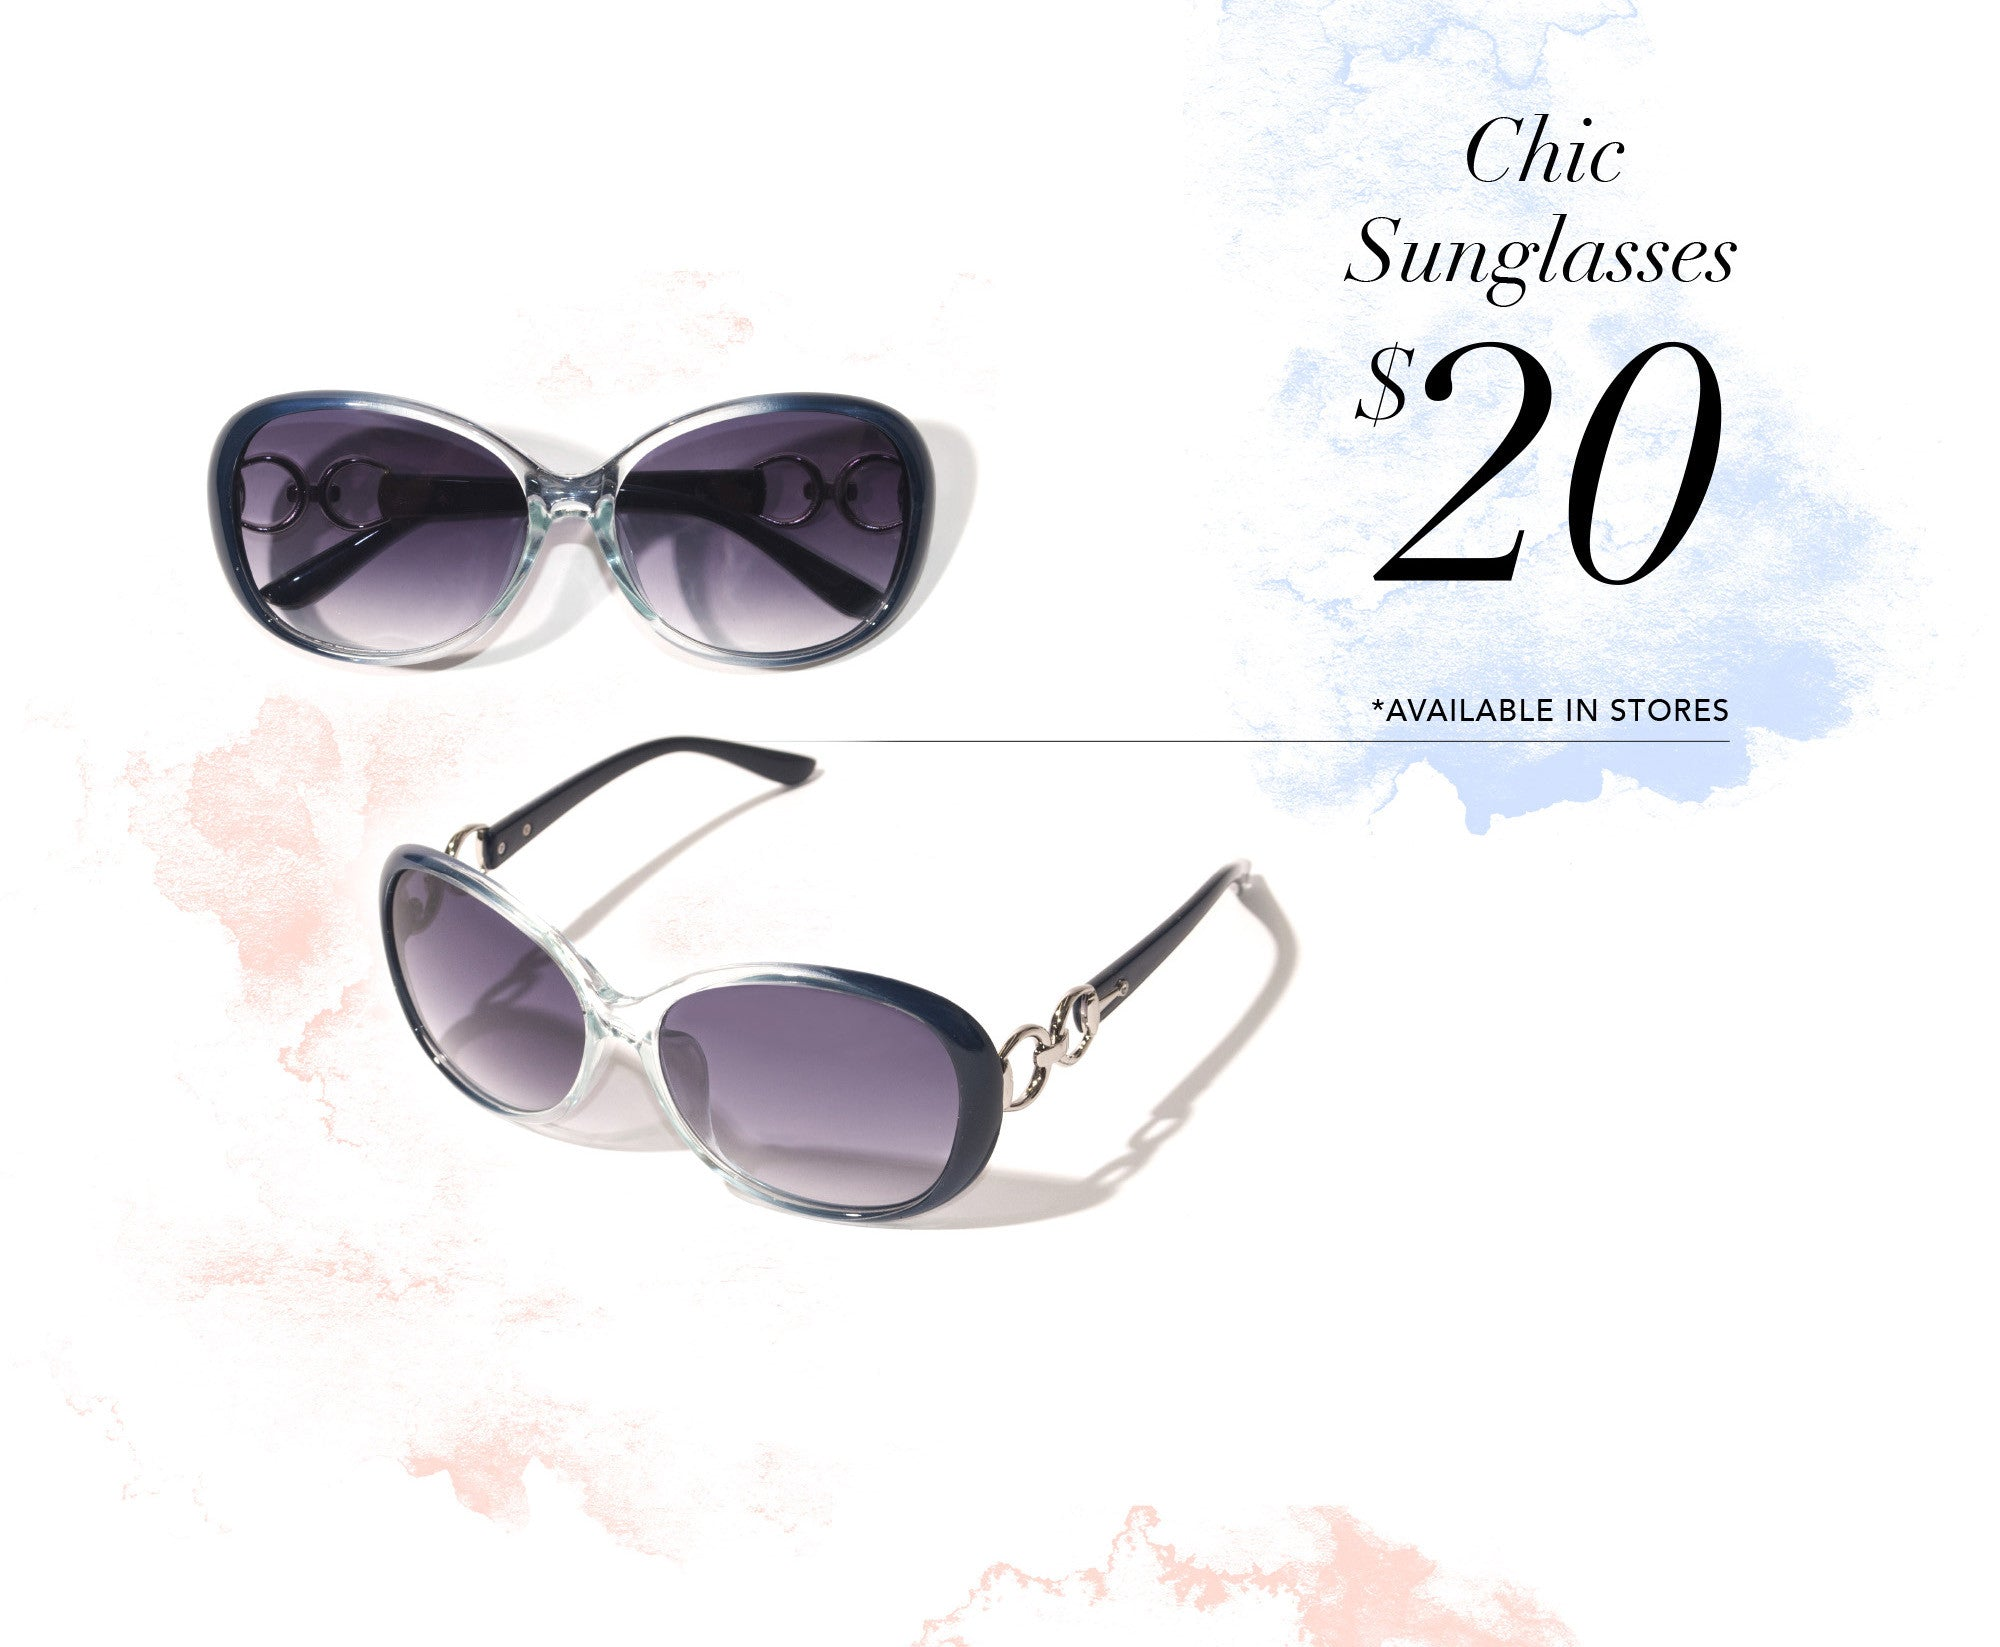 Chic Sunglasses - $20 Available In Stores